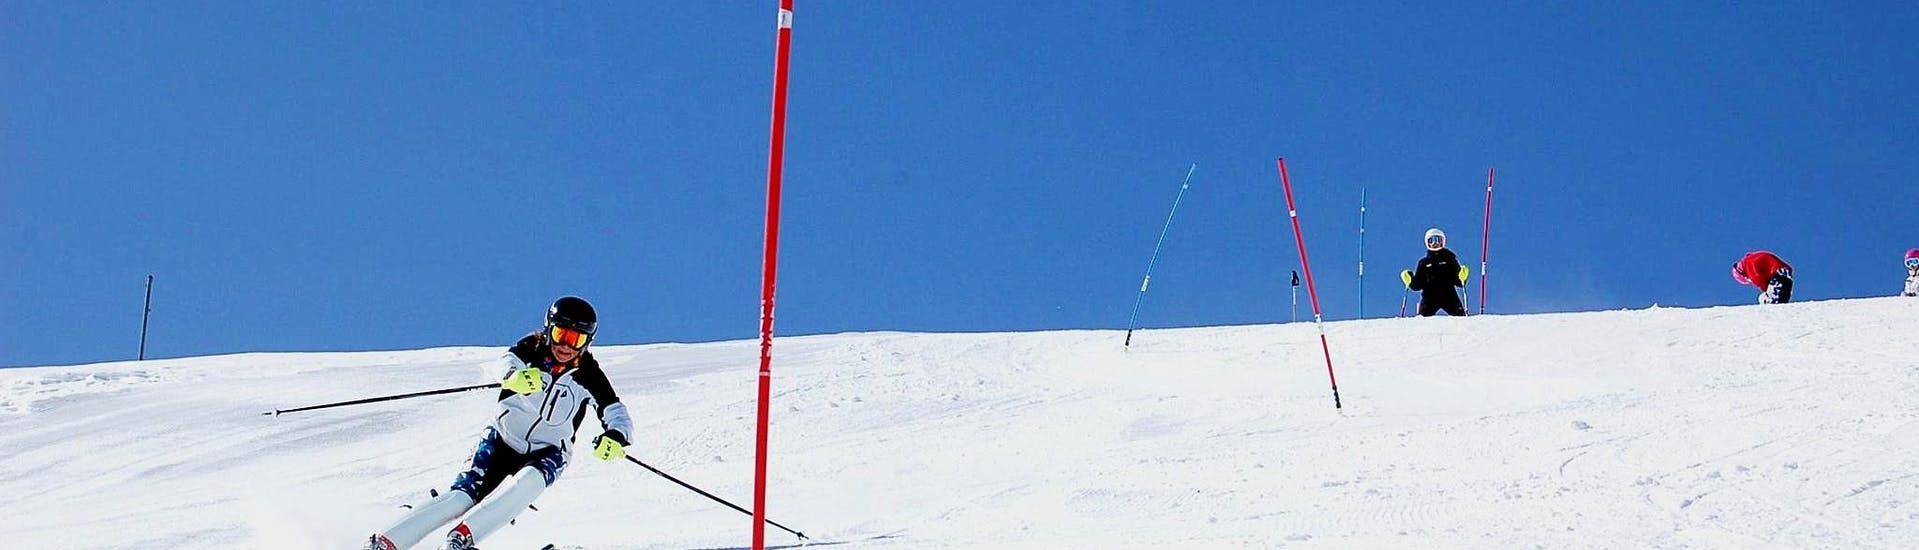 ski-lessons-for-all-levels-weekend-escola-vall-de-boi-hero